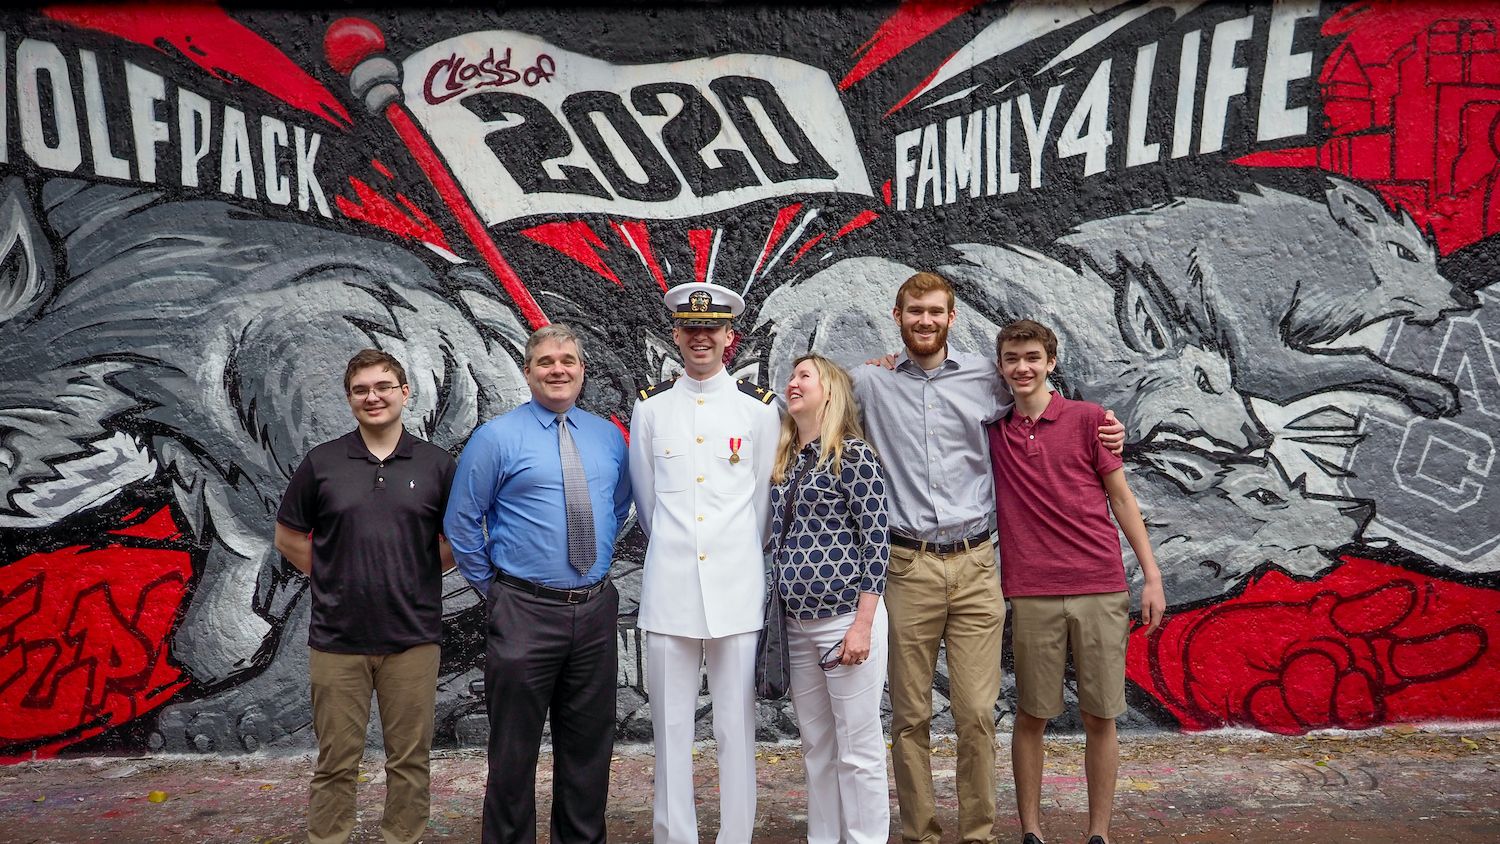 A Naval ROTC student celebrates graduation surrounded by his family in front a mural by the free expression tunnel. Photo by Marc Hall